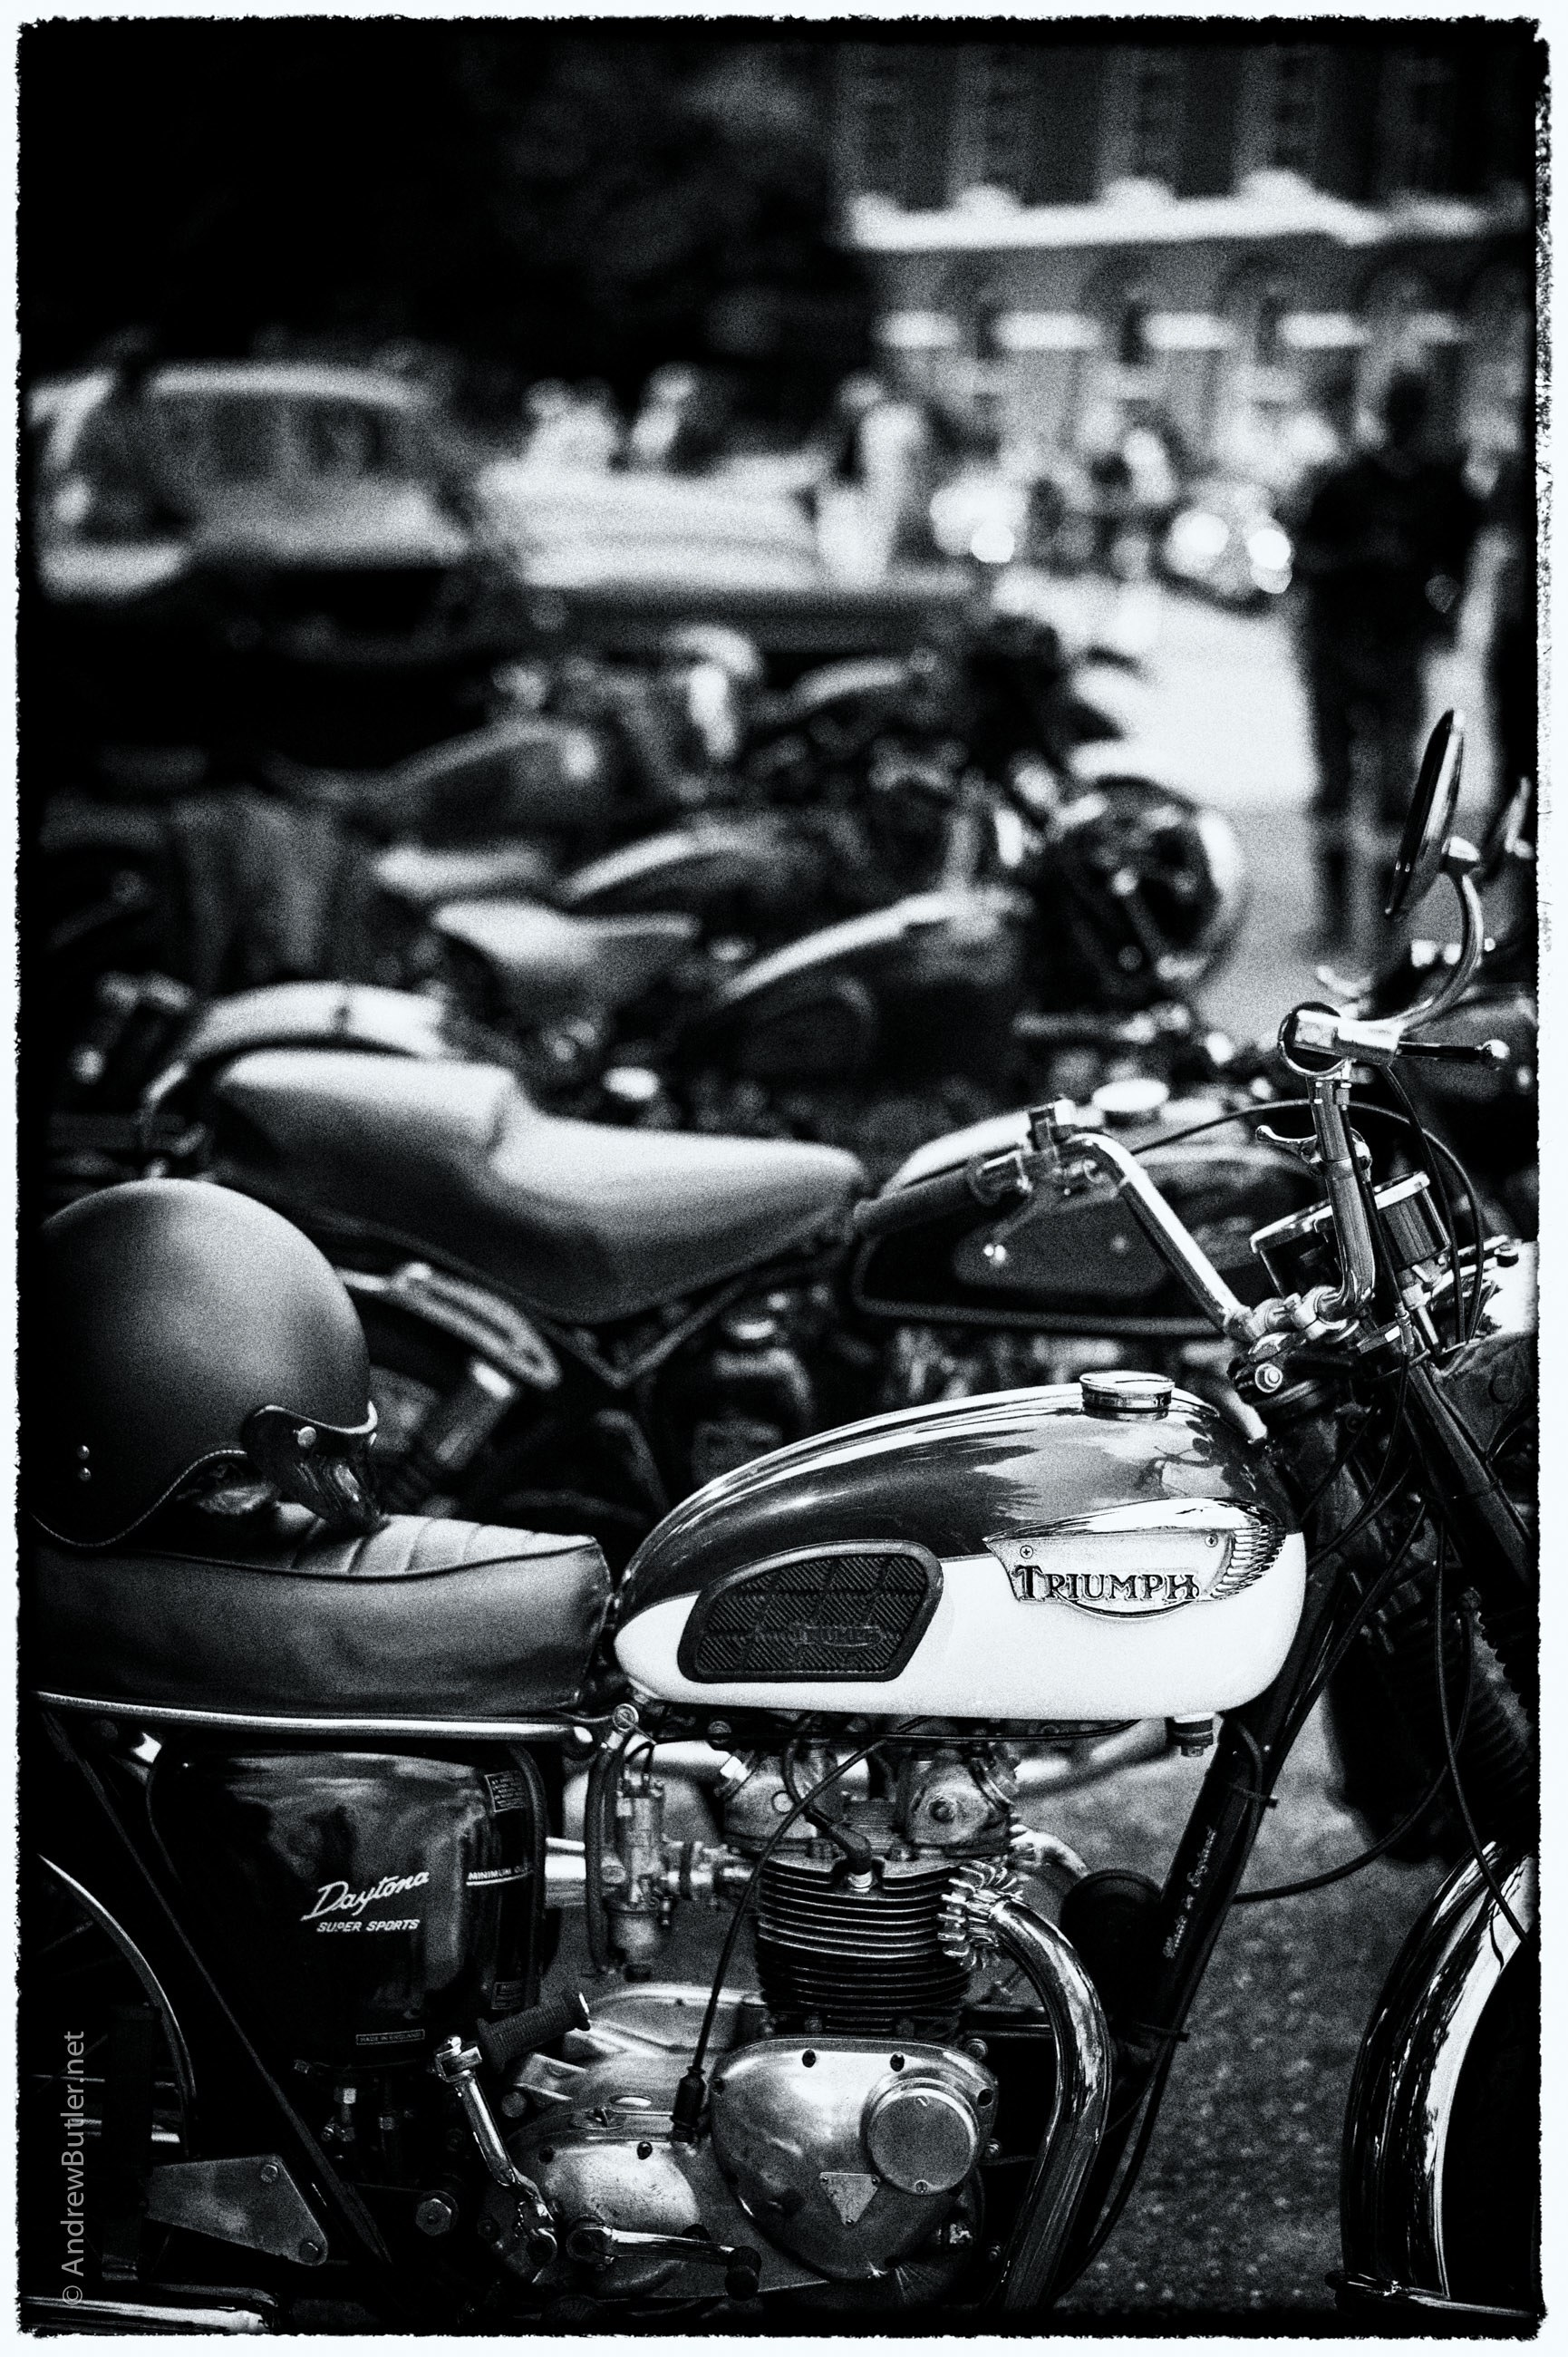 Turner Locker Revival Triumph Daytona Photograph TLBR_Honda by motorbike photographer by Andrew Butler of Exeter Devon